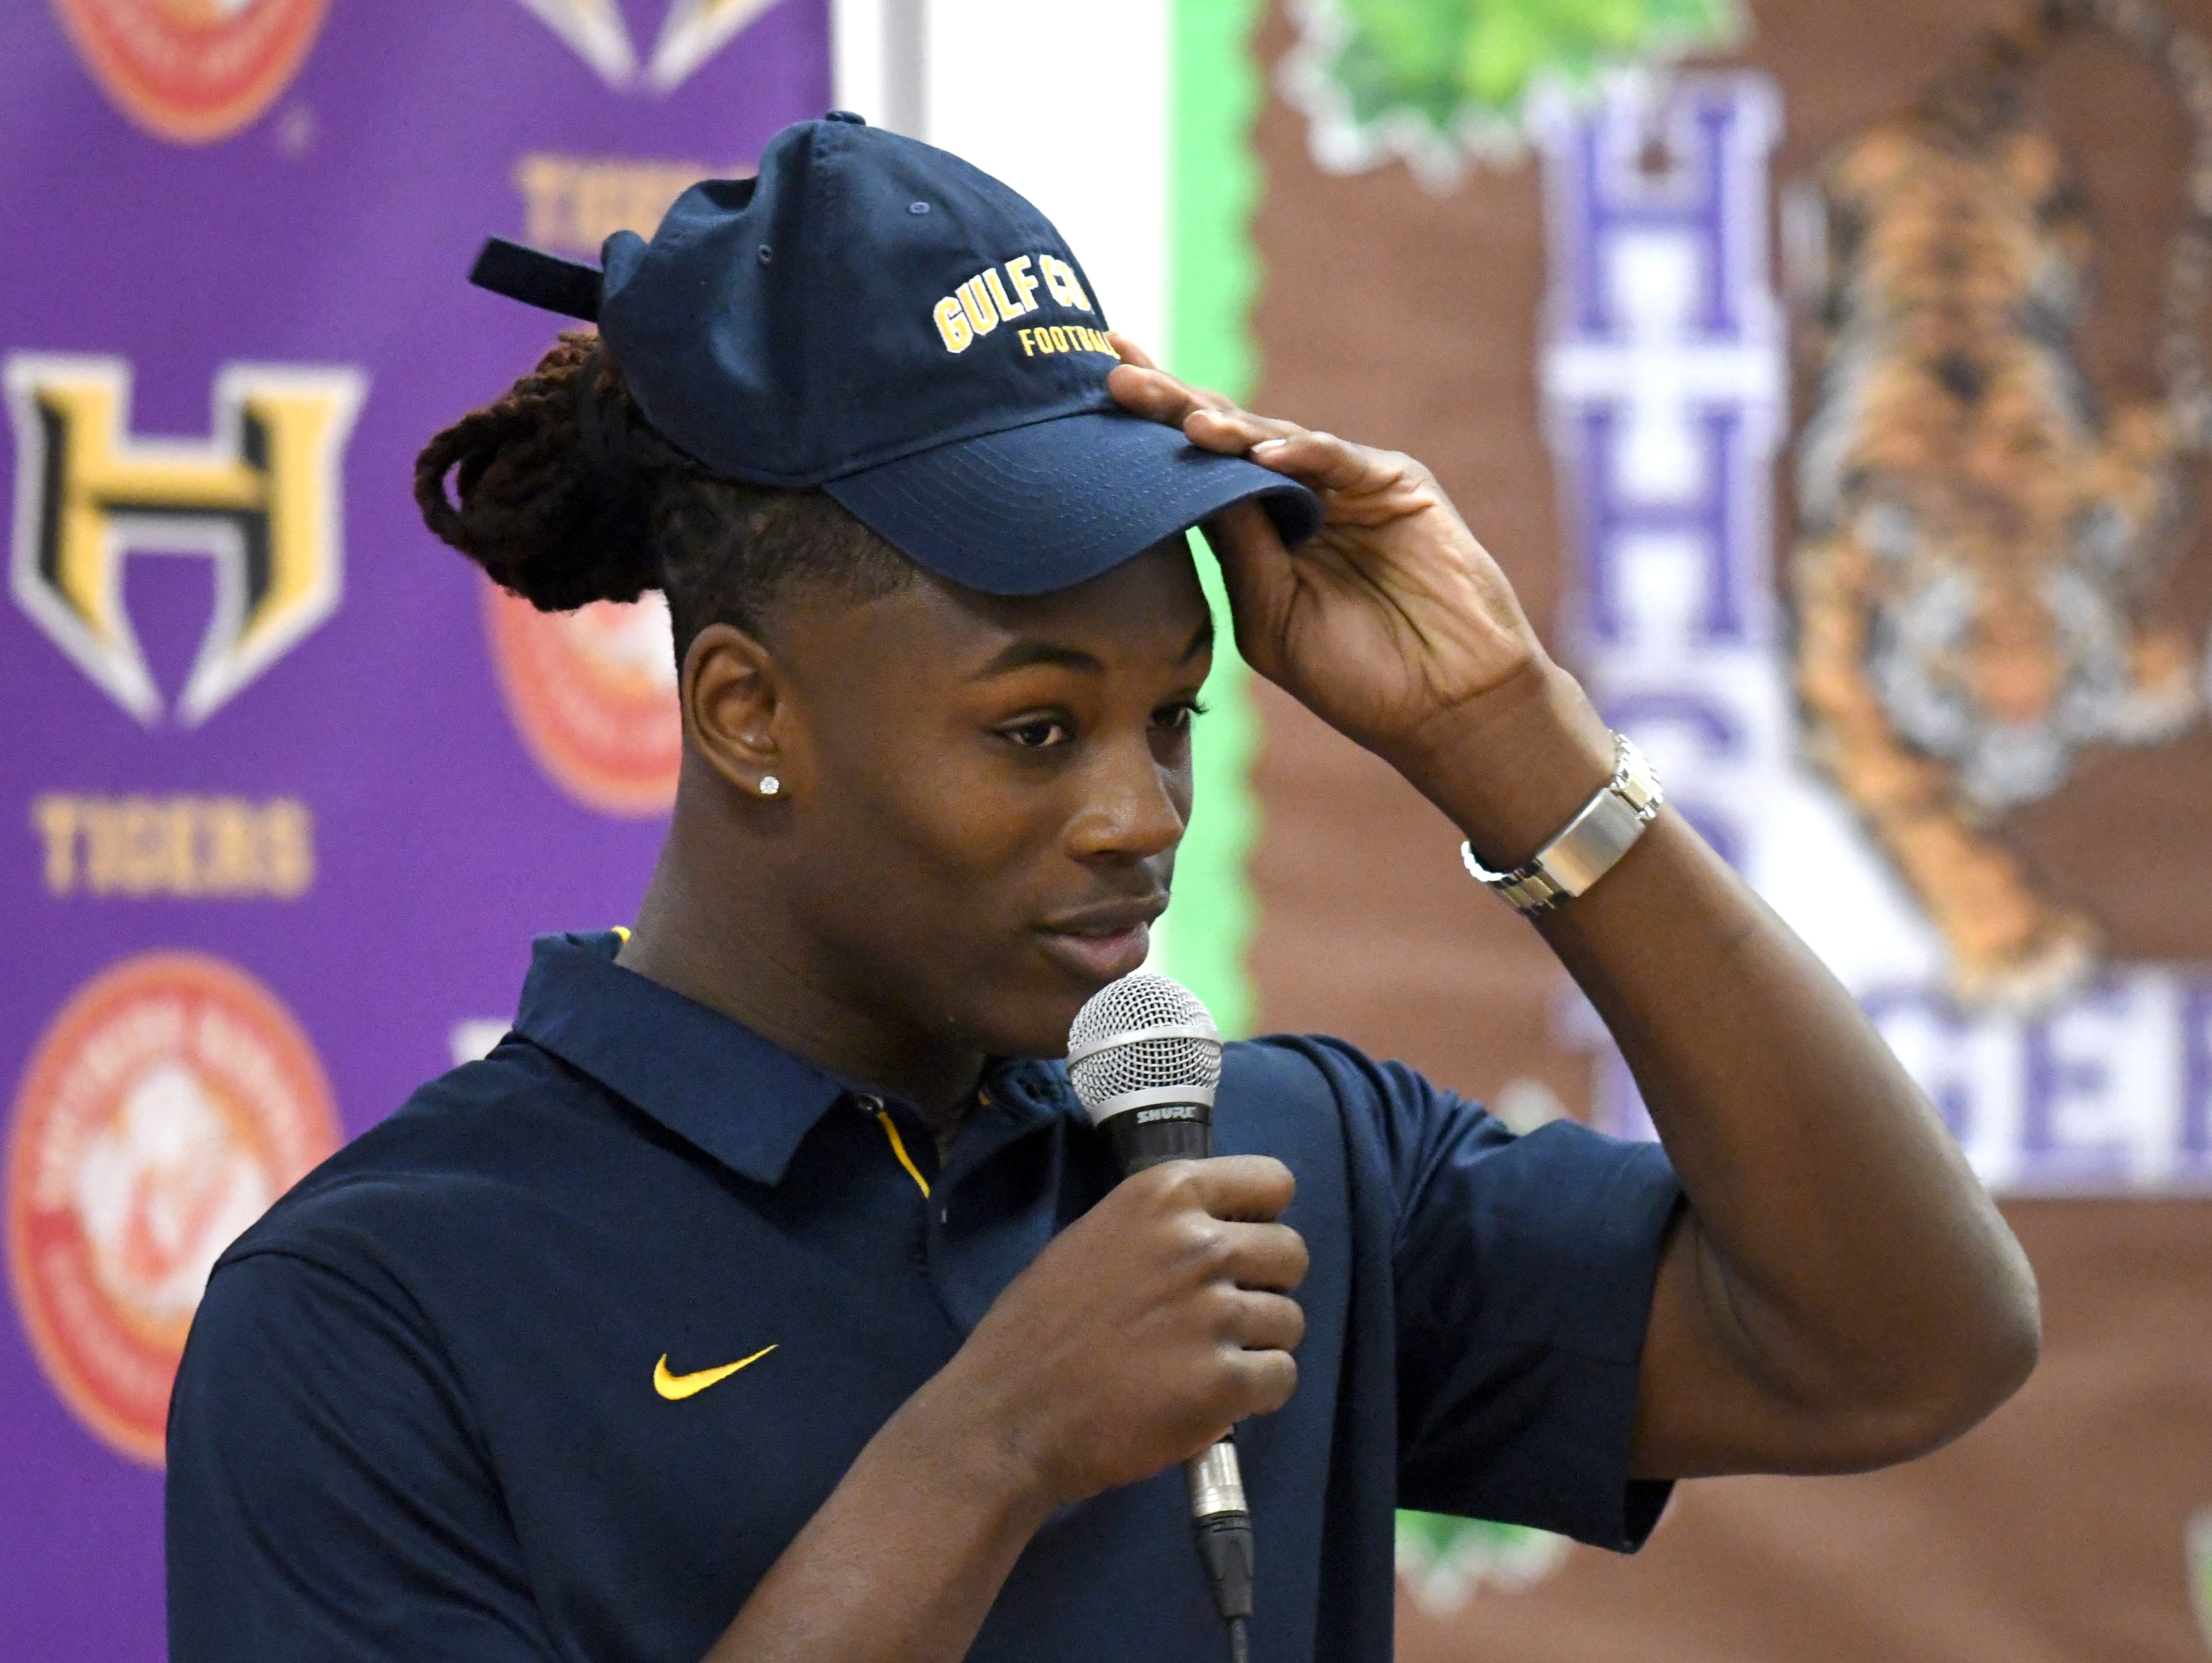 Hattiesburg High senior Jaddarius Perkins signed with Mississippi Gulf Coast Community College during National Signing Day in Hattiesburg on Wednesday, February 6, 2019.